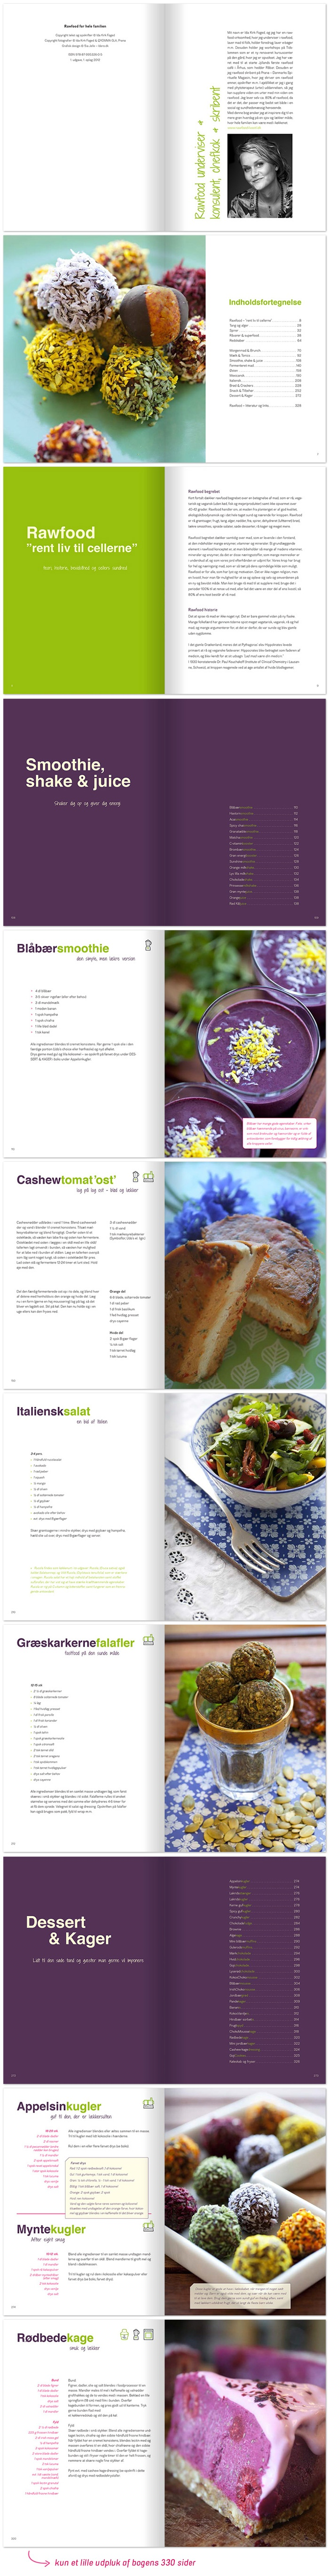 Rawfood recipes (Danish) | Idero